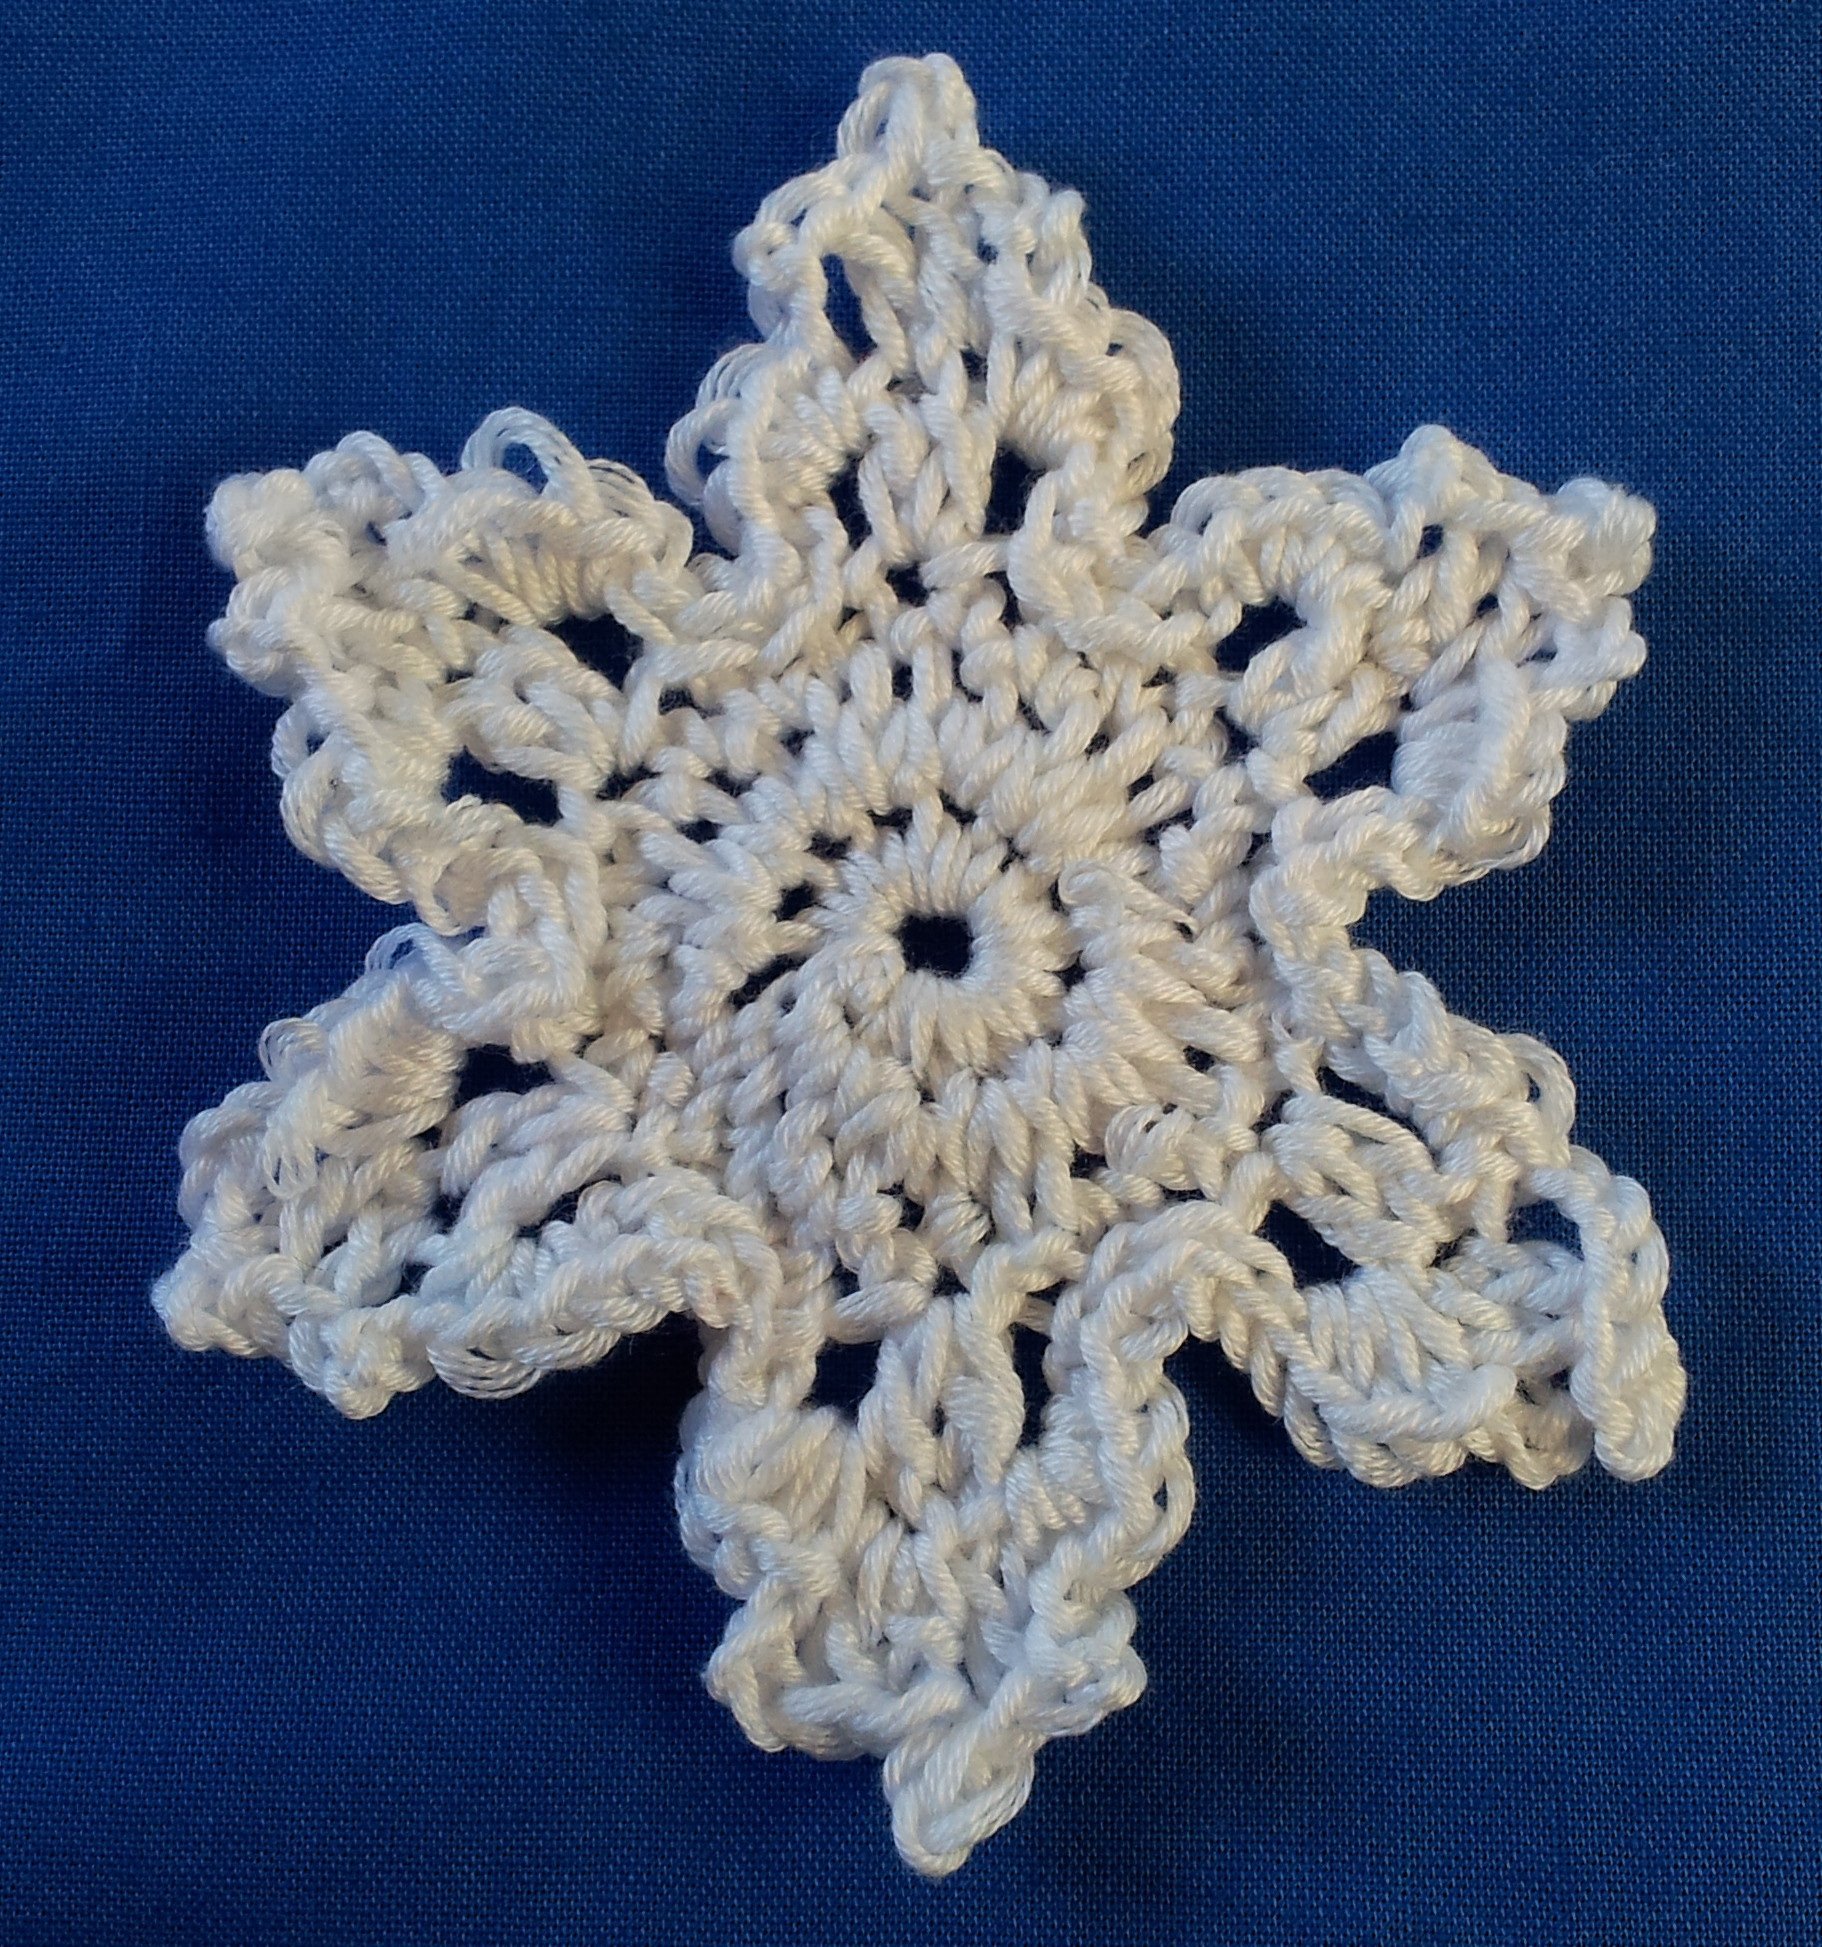 Crochet Snowflake Pattern Awesome About Amy solovay Snowflake Of Wonderful 50 Photos Crochet Snowflake Pattern